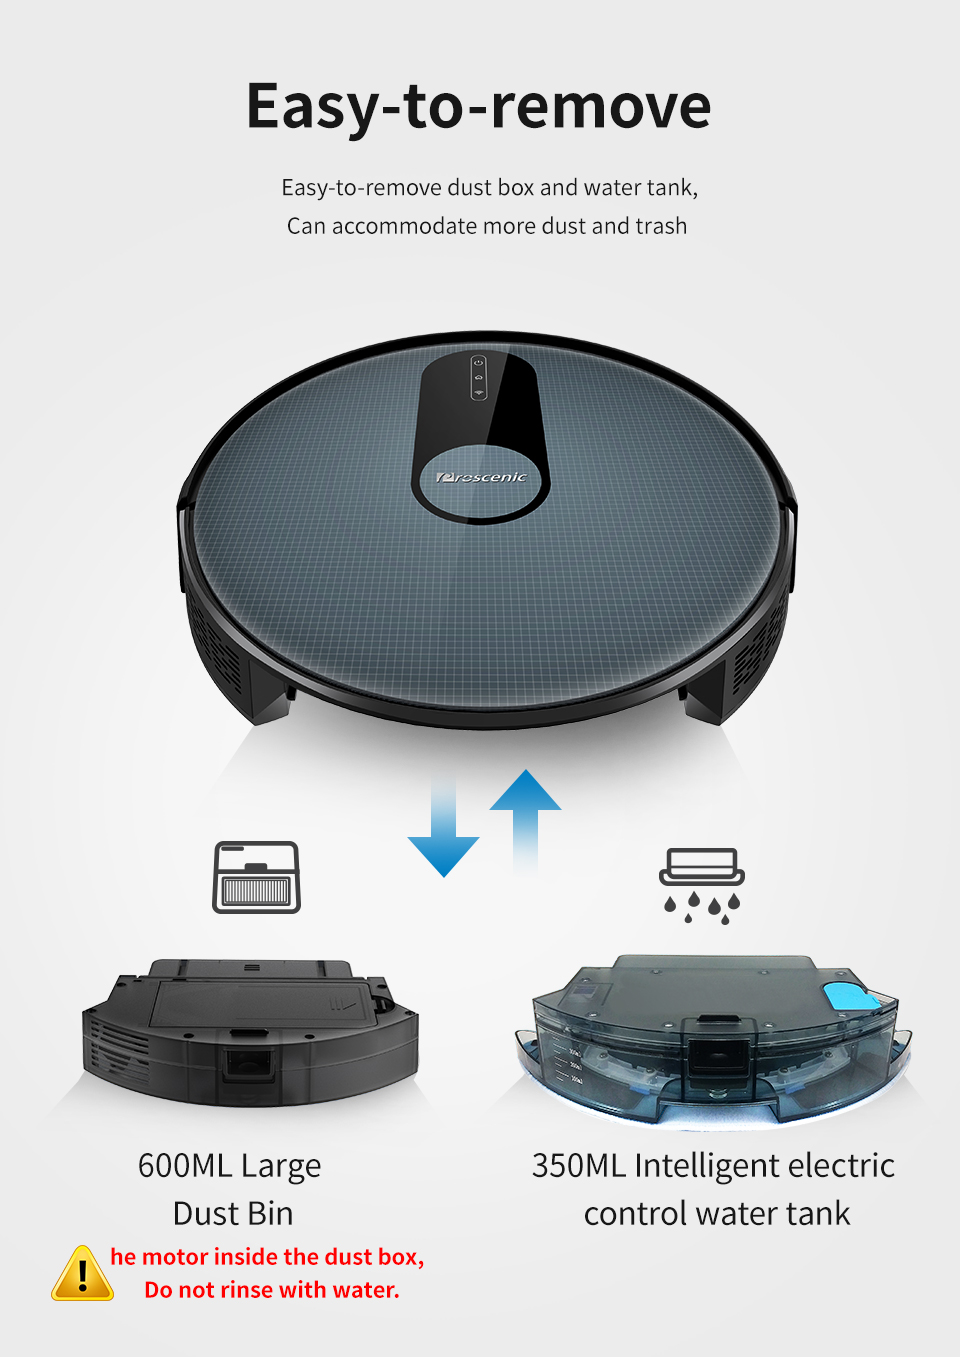 H762fba68f5a94904b069dd60e6a33c19m Proscenic 820P Robot Vacuum Cleaner Smart Planned 1800Pa Suction with wet cleaning for Home Carpet Cleaner Washing Smart Robot